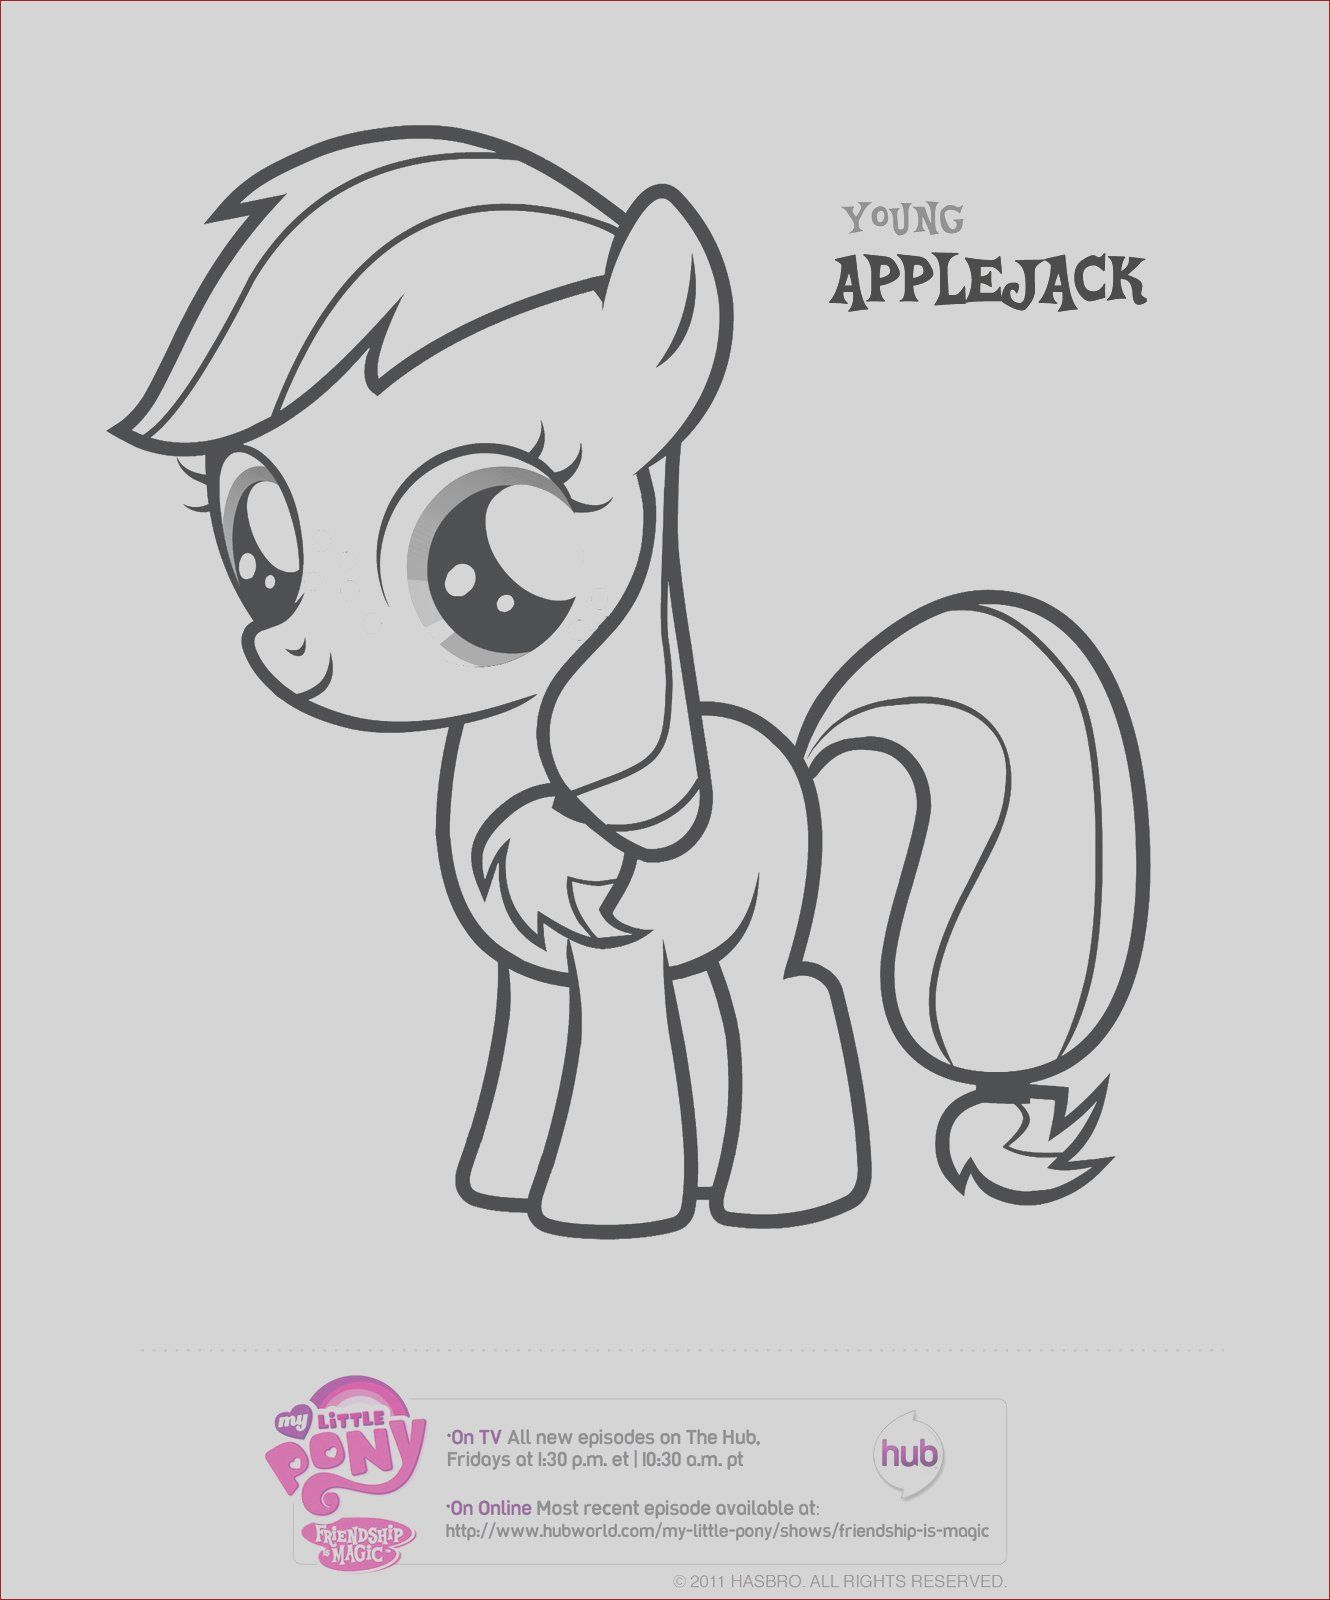 18 Unique Image Of Coloring Pages Of My Little Pony Friendship Is Magic In 2020 Cartoon Coloring Pages My Little Pony Coloring My Little Pony Friendship